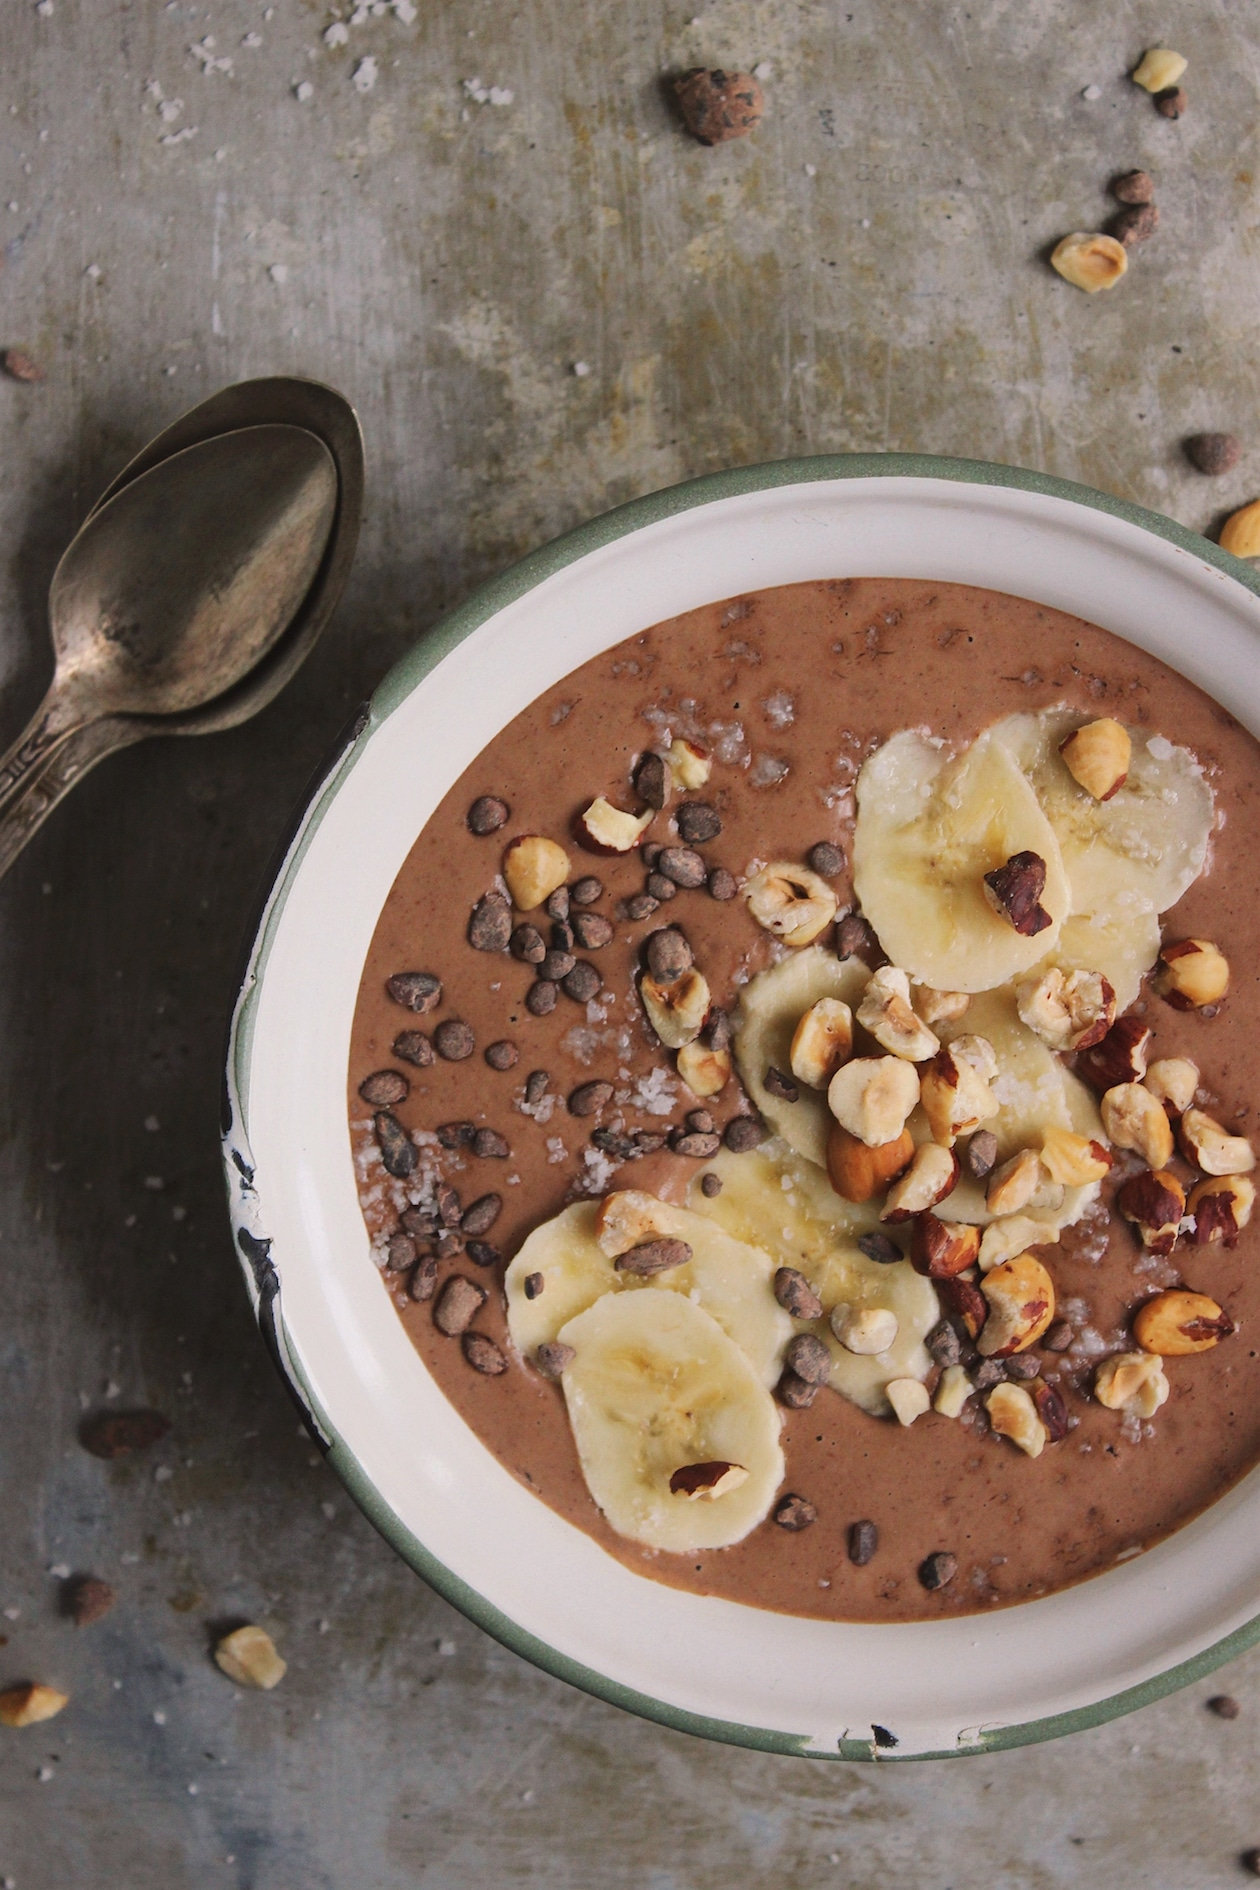 Creamy Vegan Chocolate Hazelnut Smoothie Bowl